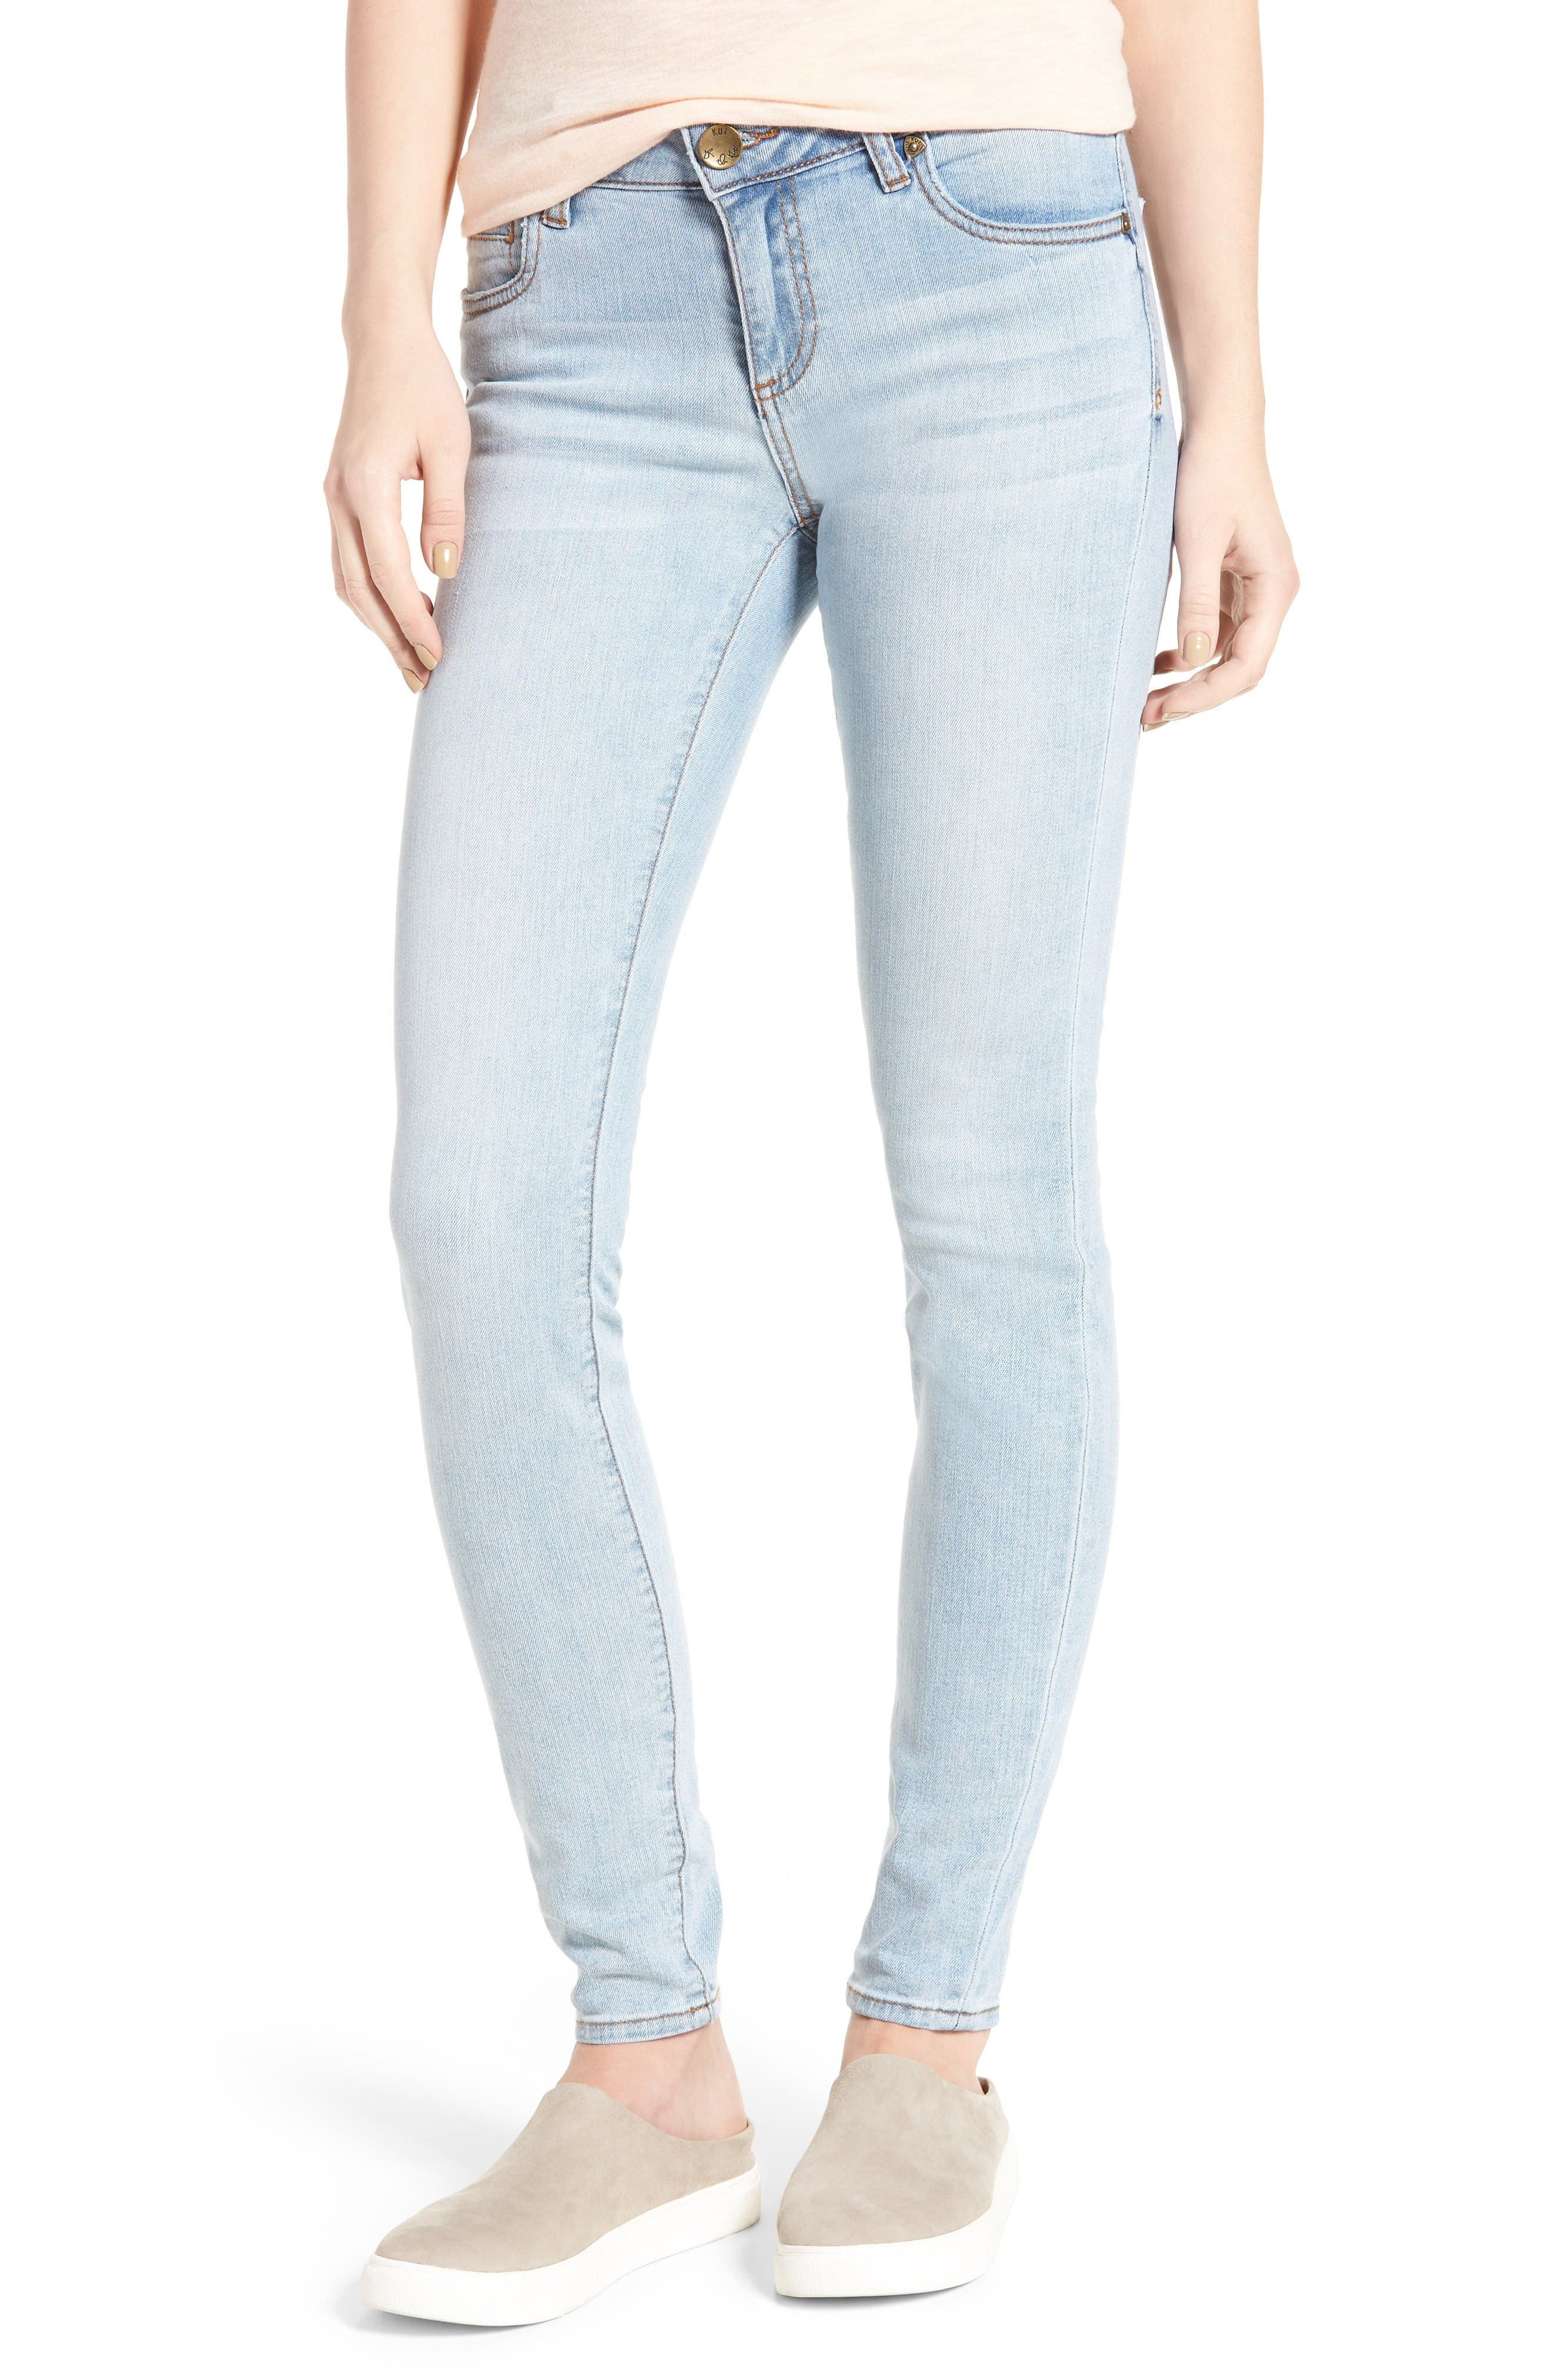 Alternate Image 1 Selected - KUT from the Kloth Mia Toothpick Skinny Jeans (Expectation)